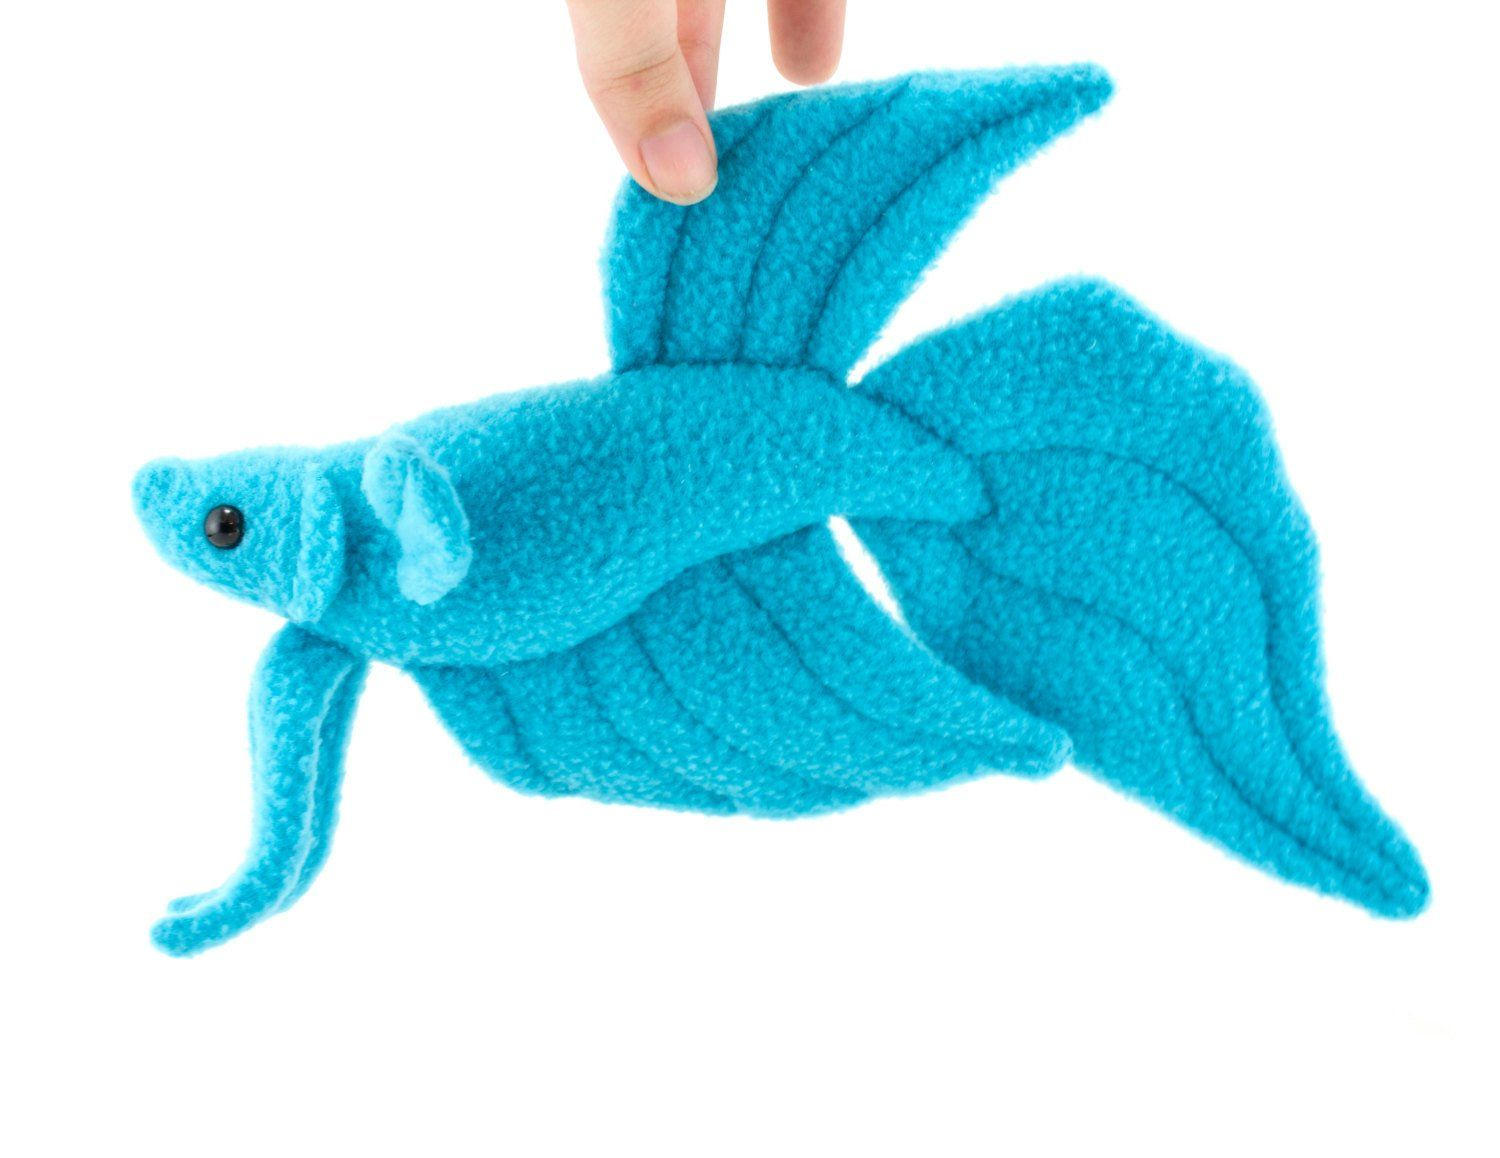 Blue Betta Fish Stuffed Animal Plush Toy Veil Tail Type Betta